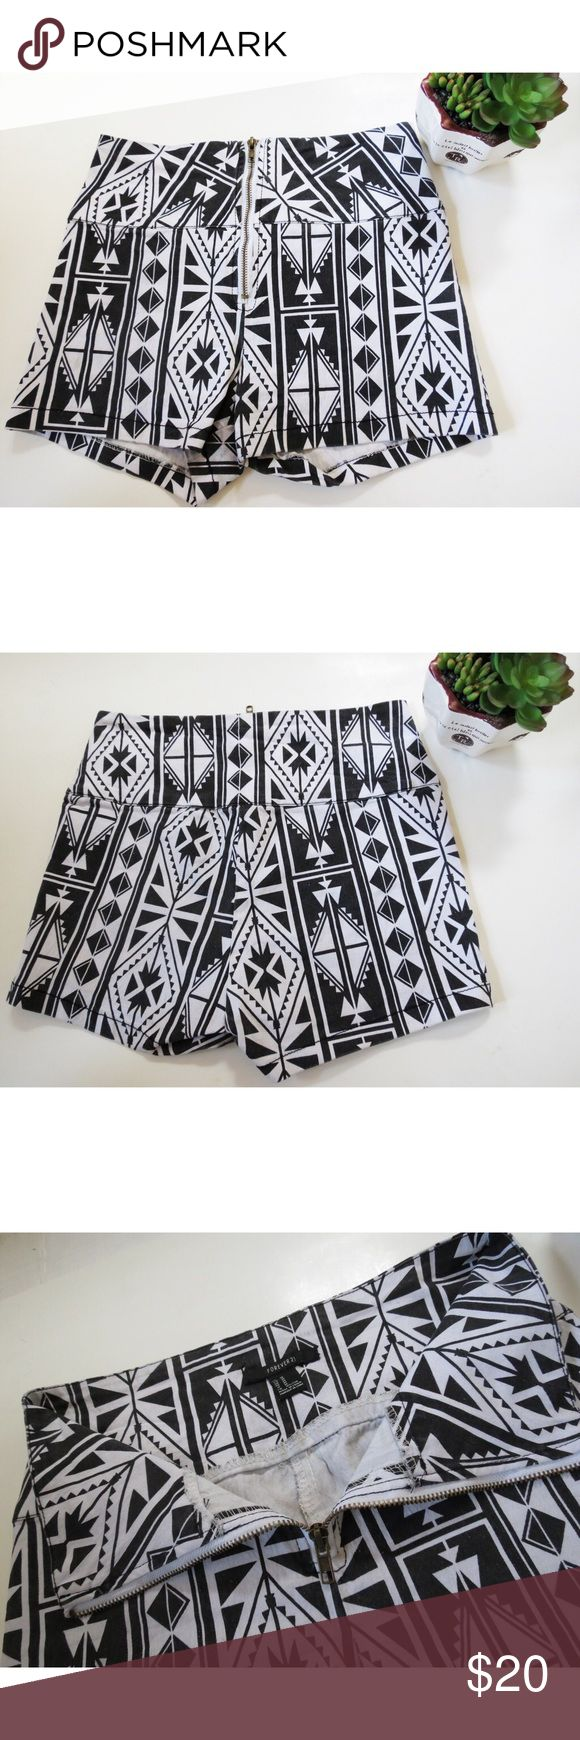 NWOT Forever 21 Aztec print high waisted shorts 🆕 Brand new with tags high waisted Aztec printed shorts. These shorts are super cute with a black and white Aztec print, front zipper, and the perfect high waisted fit! Size medium with great stretch. Forever 21 Shorts